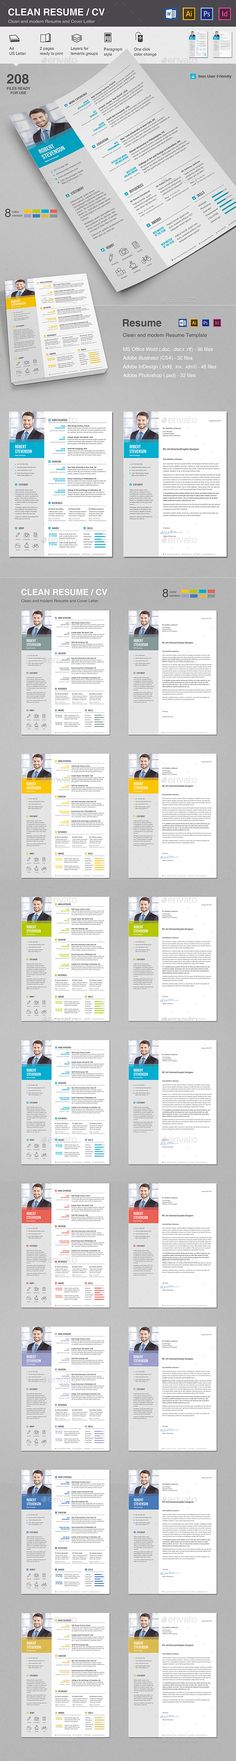 Clean Resume \/ CV Resume cv and Ai illustrator - illustrator resume